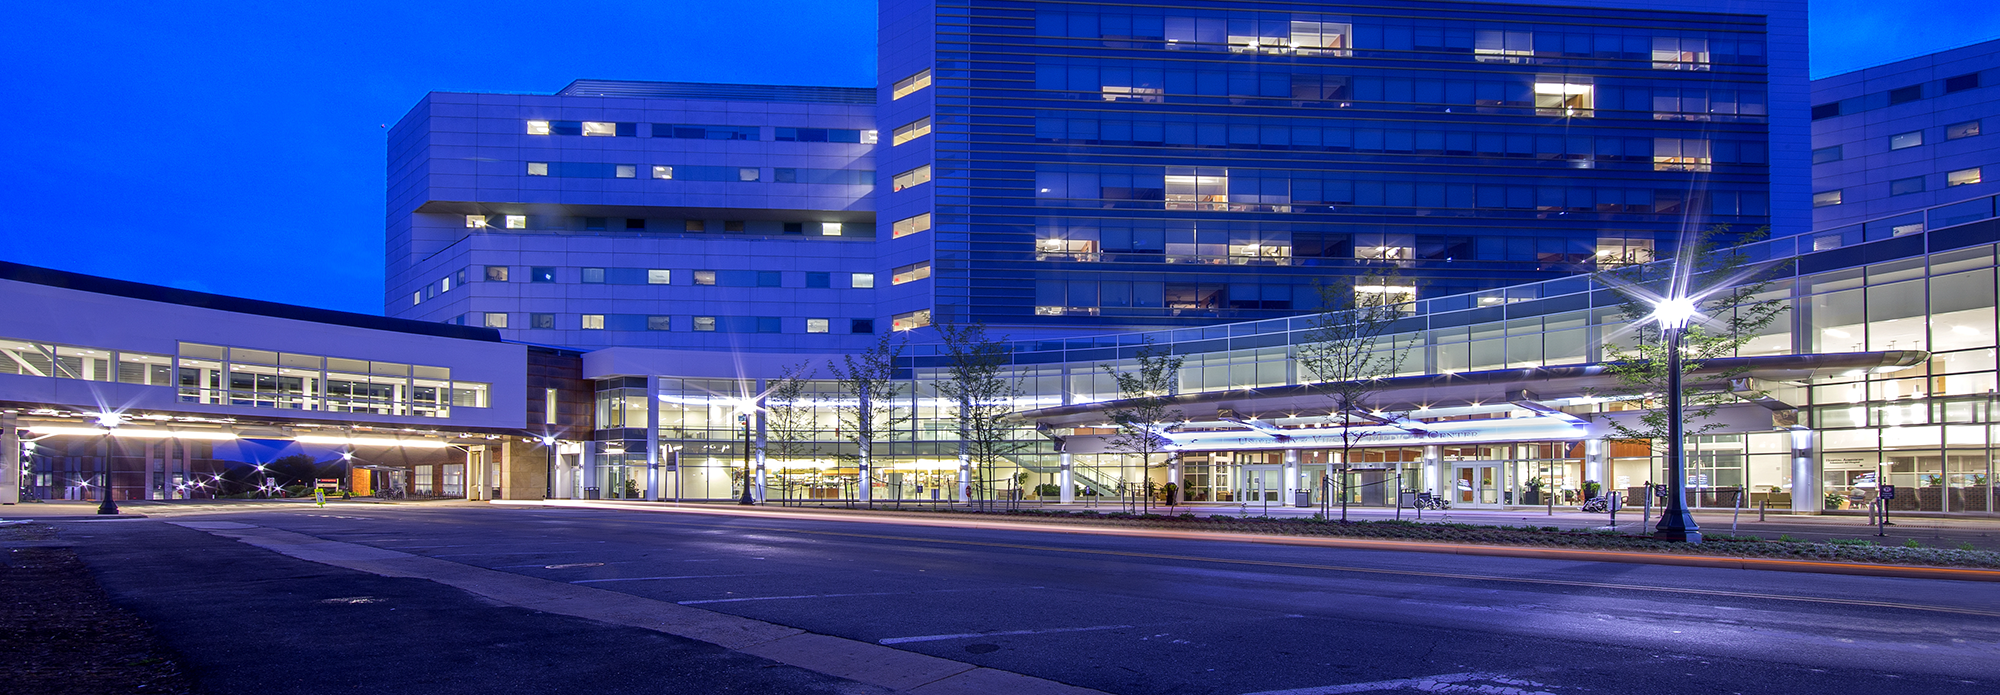 UVA Medical Center at Night